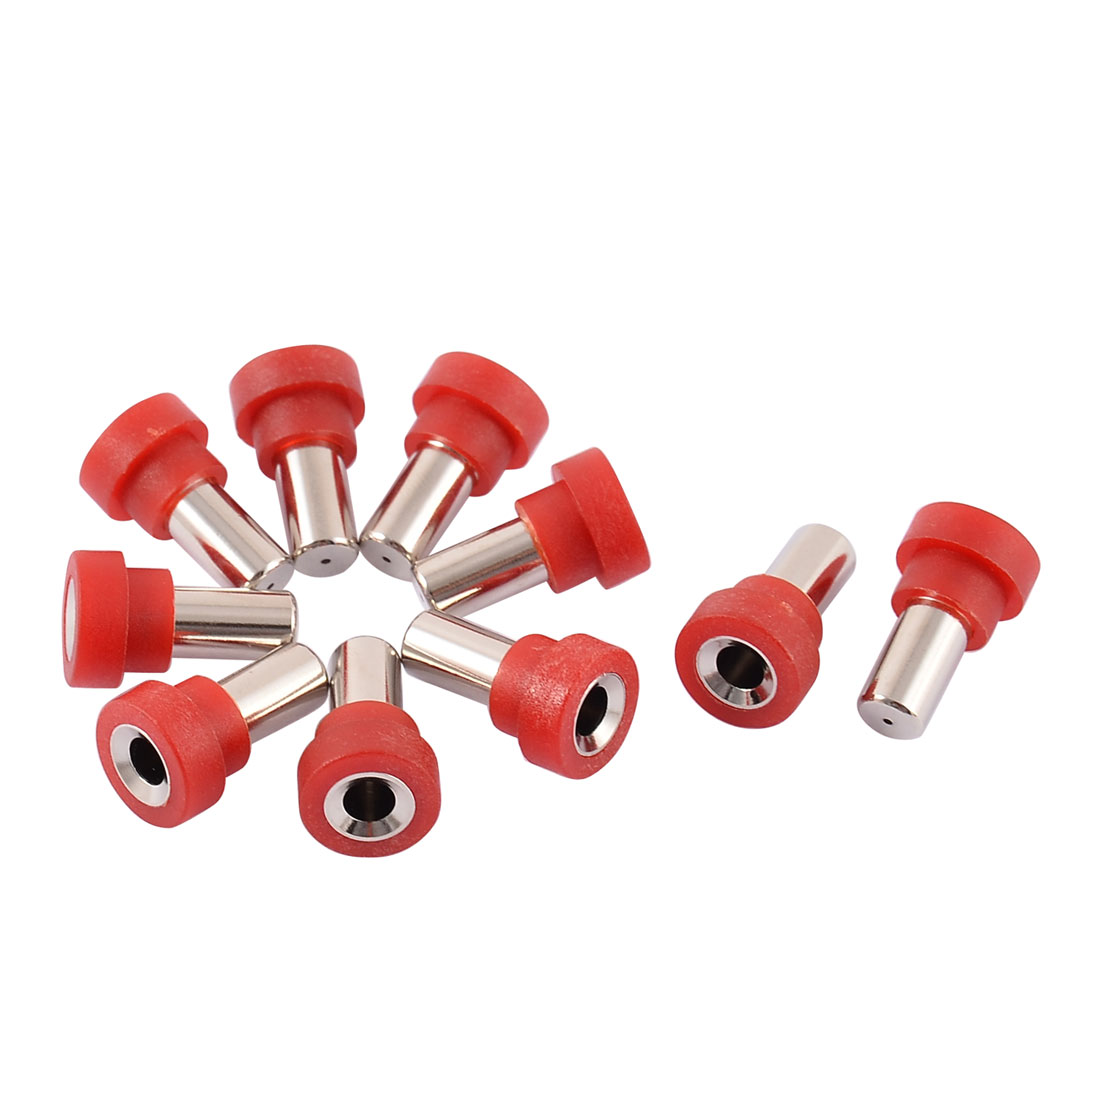 10pcs 4mm Red Banana Female Socket Speaker Cord Cable Coupler Adapter for RC Airplane